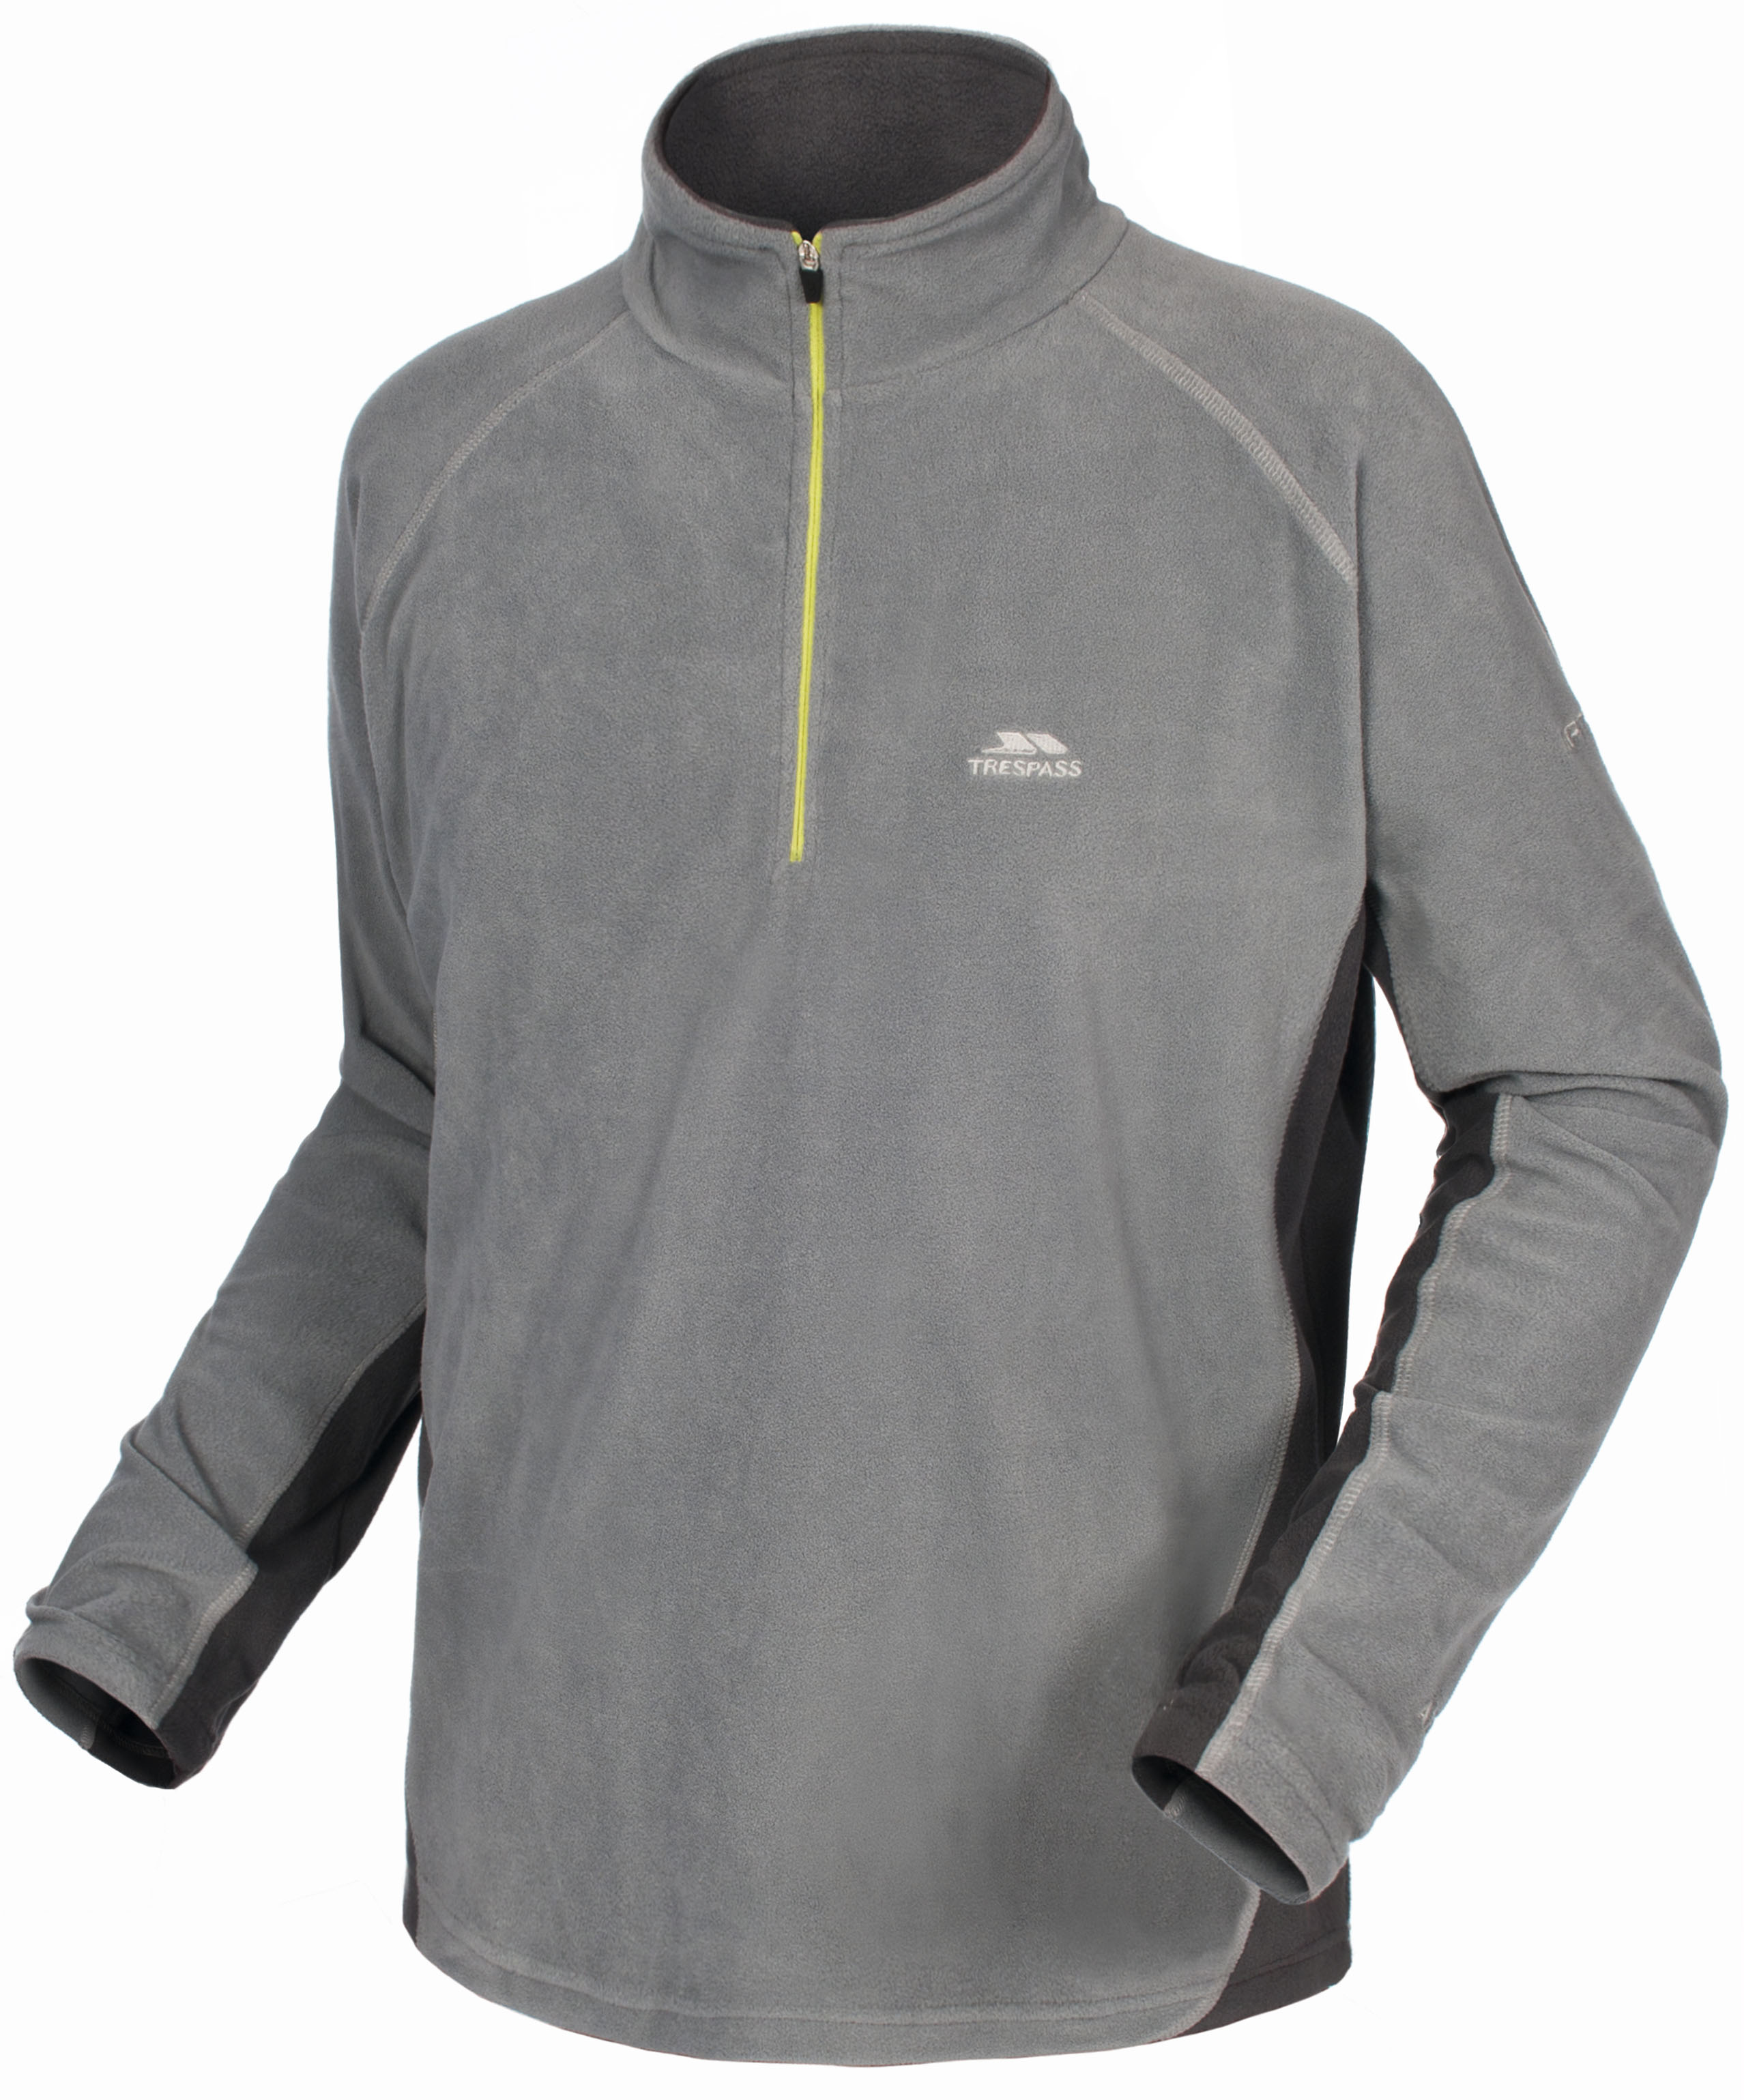 Trespass Mens Fleece - Smoke